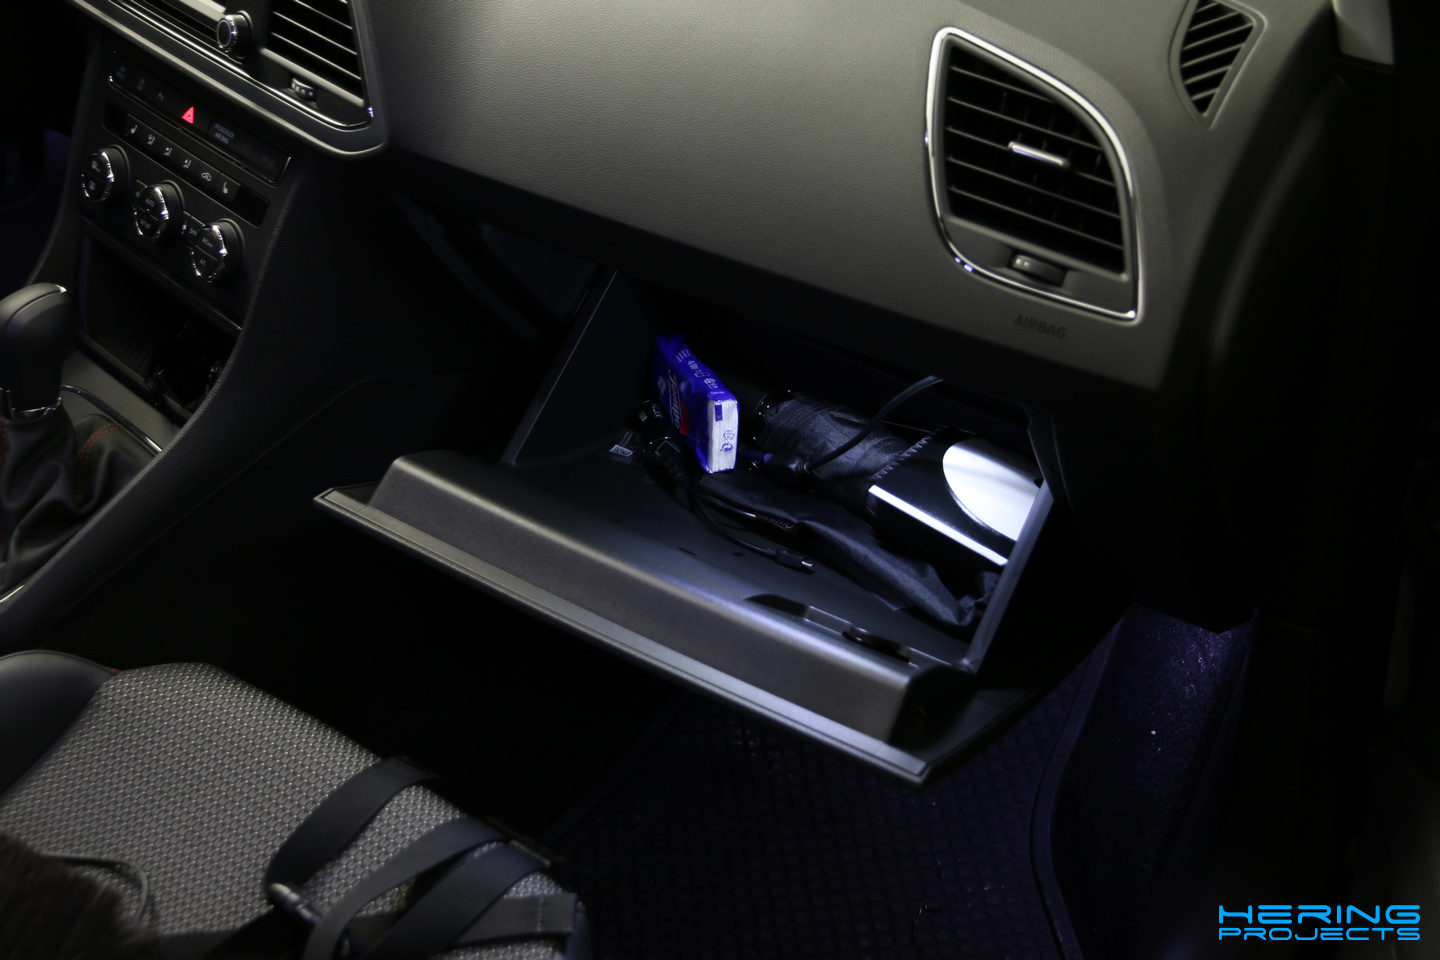 Led Beleuchtung Auto Innenraum Innenraumbeleuchtung Umrüsten Auf Led Seat Leon 5f Hering Projects